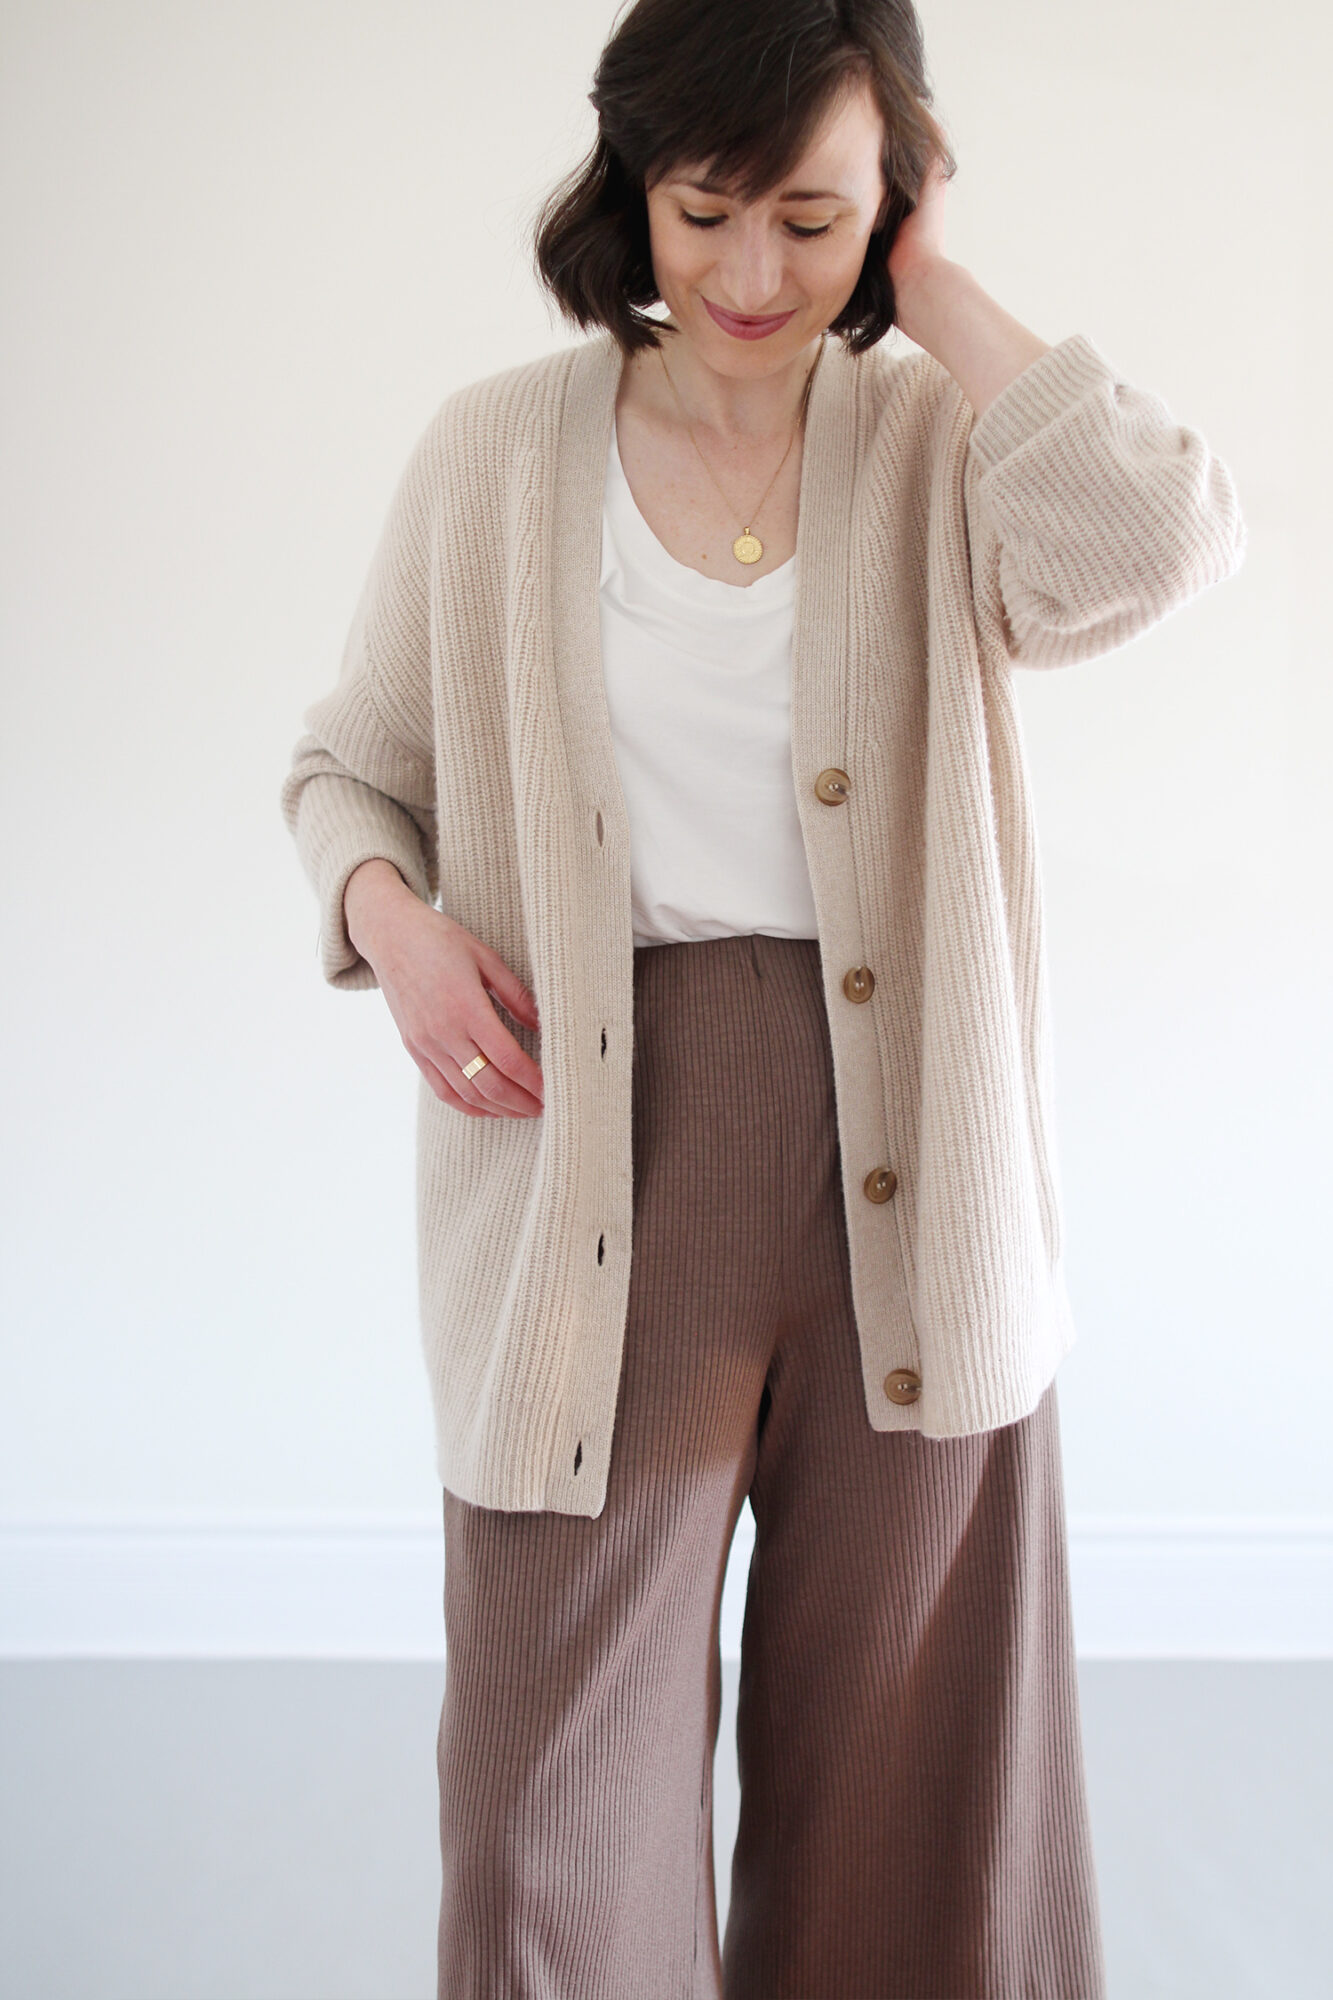 Style Bee - Loose Layers & Light Tones